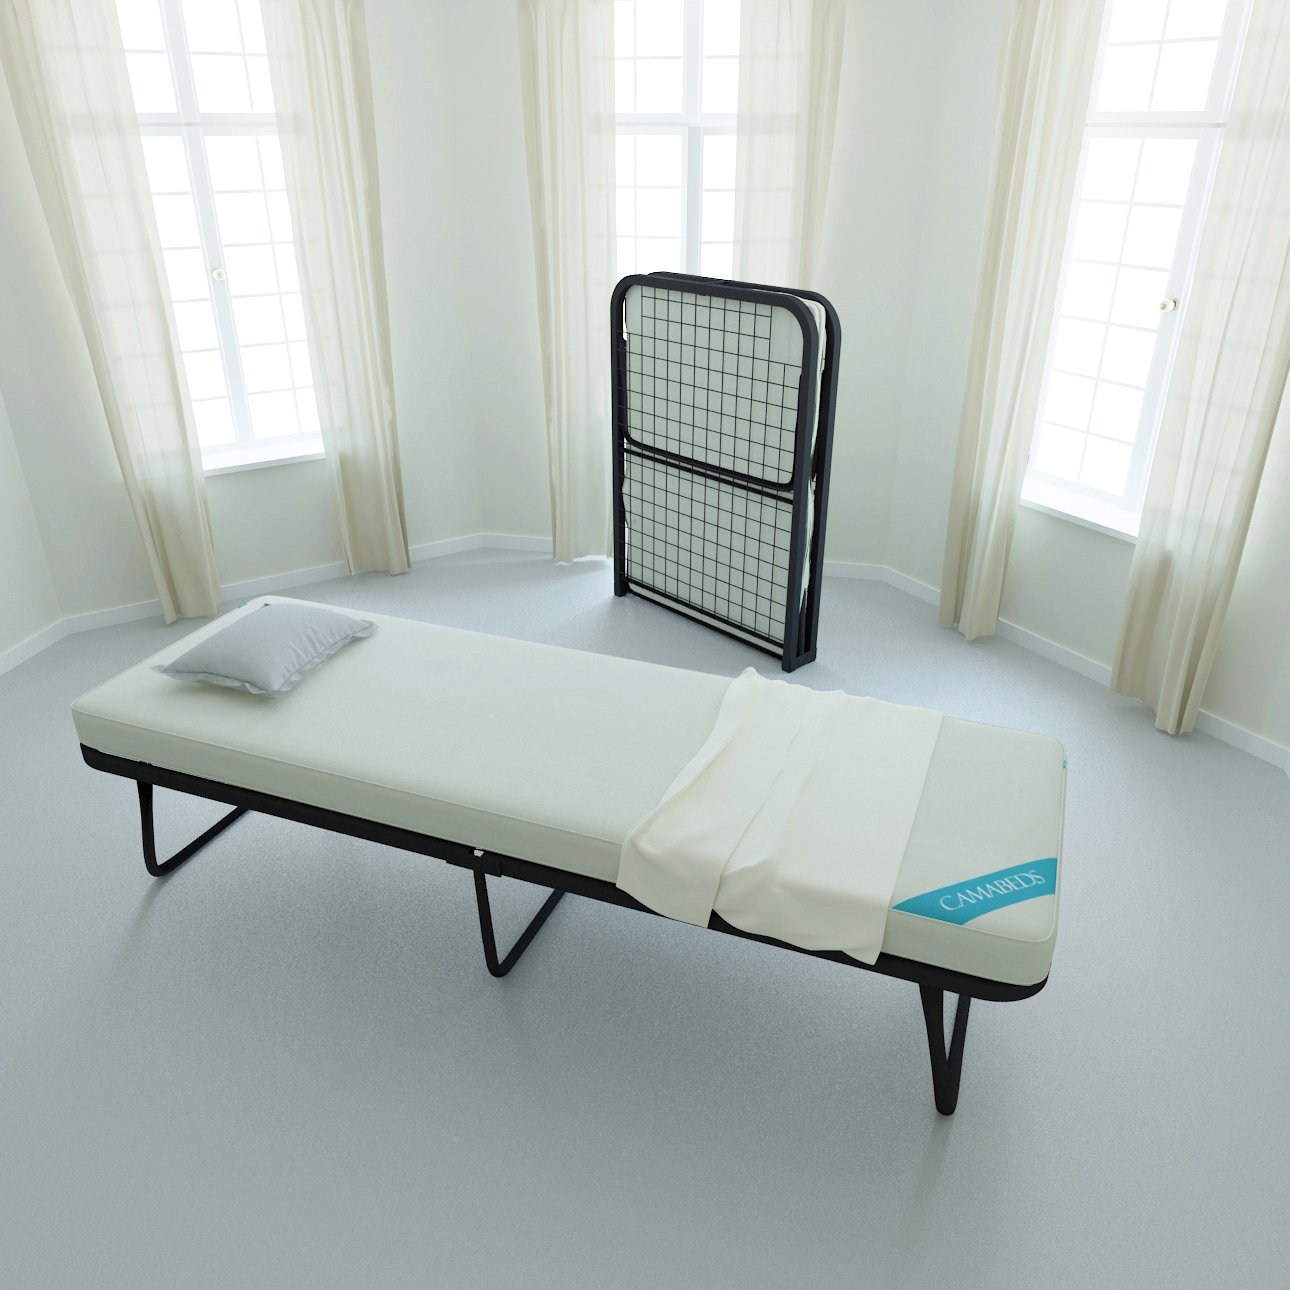 - Camabeds Needus Single Small Size Lightweight Folding Bed With 3.5